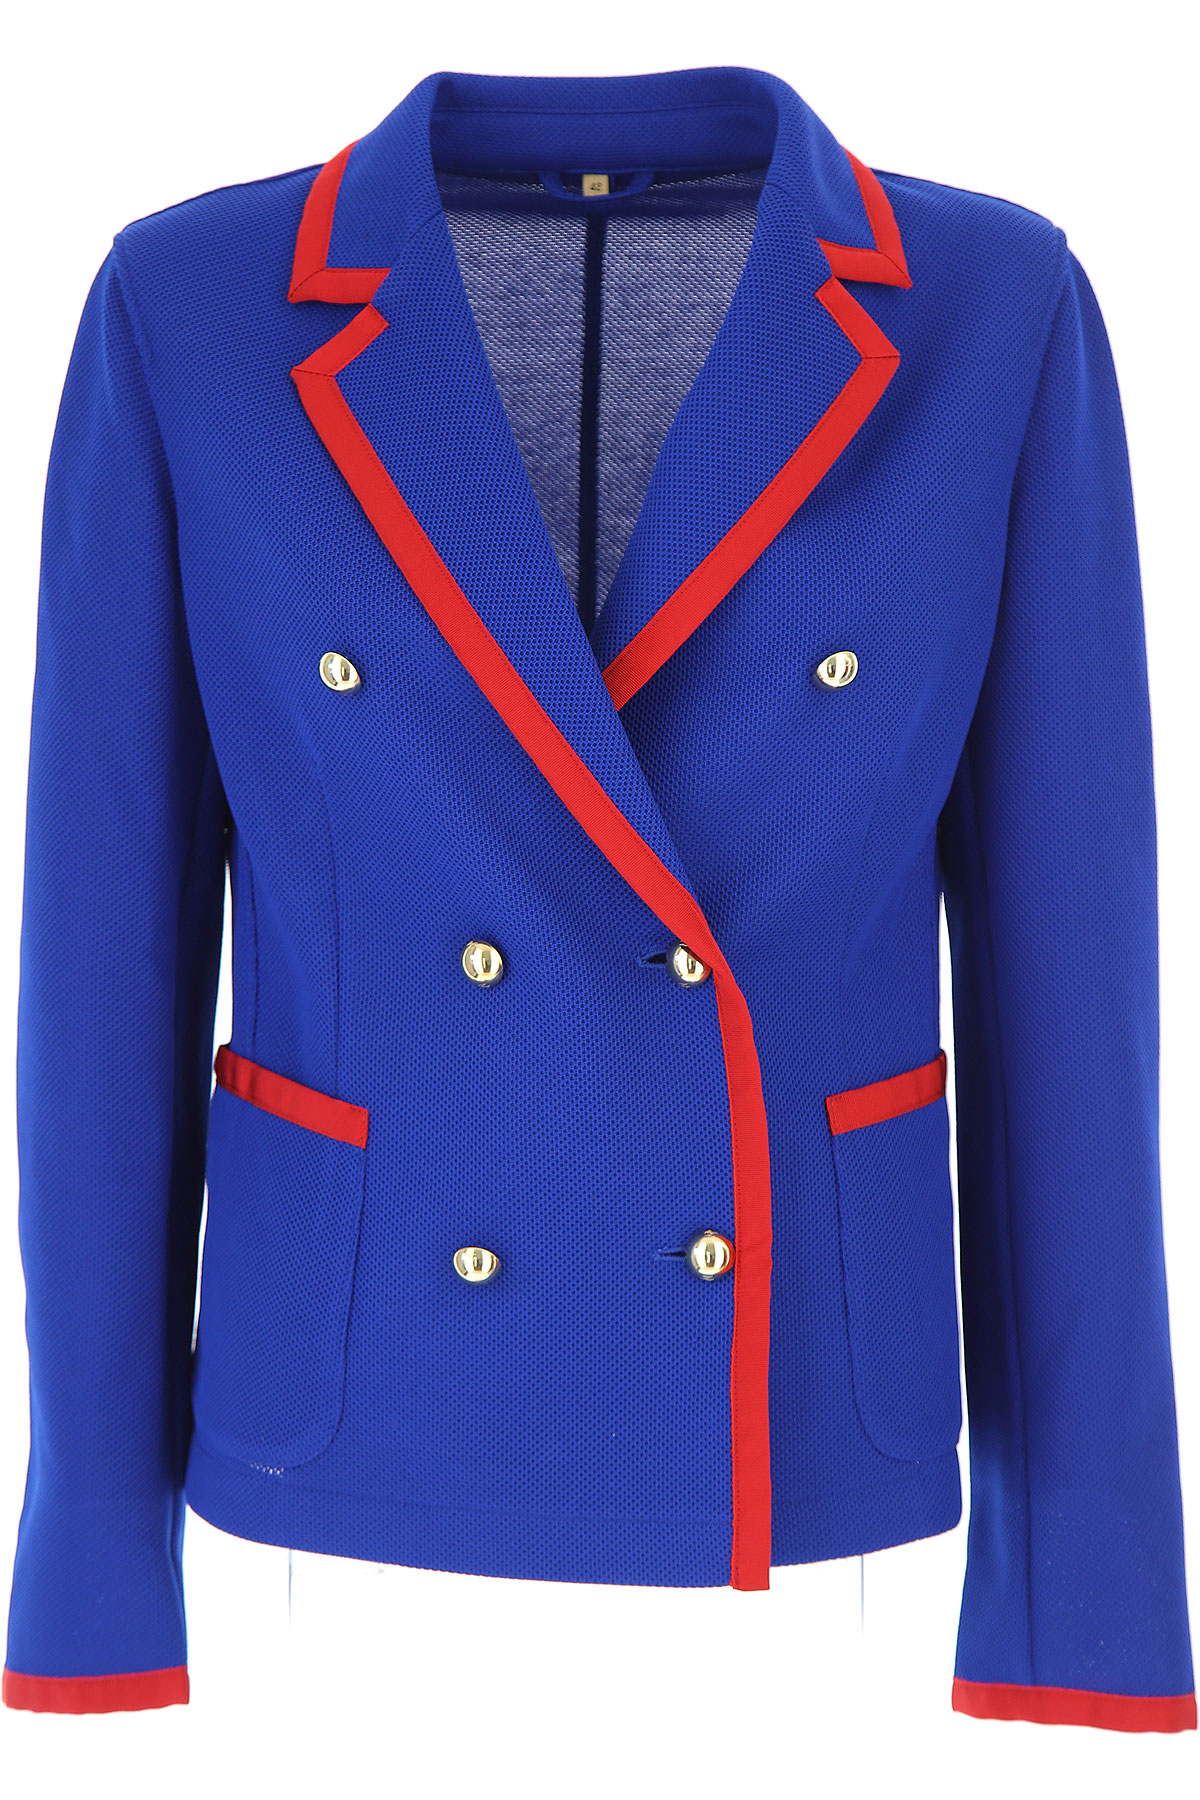 Image of Fay Blazer for Women On Sale, Bluette, polyester, 2017, 4 6